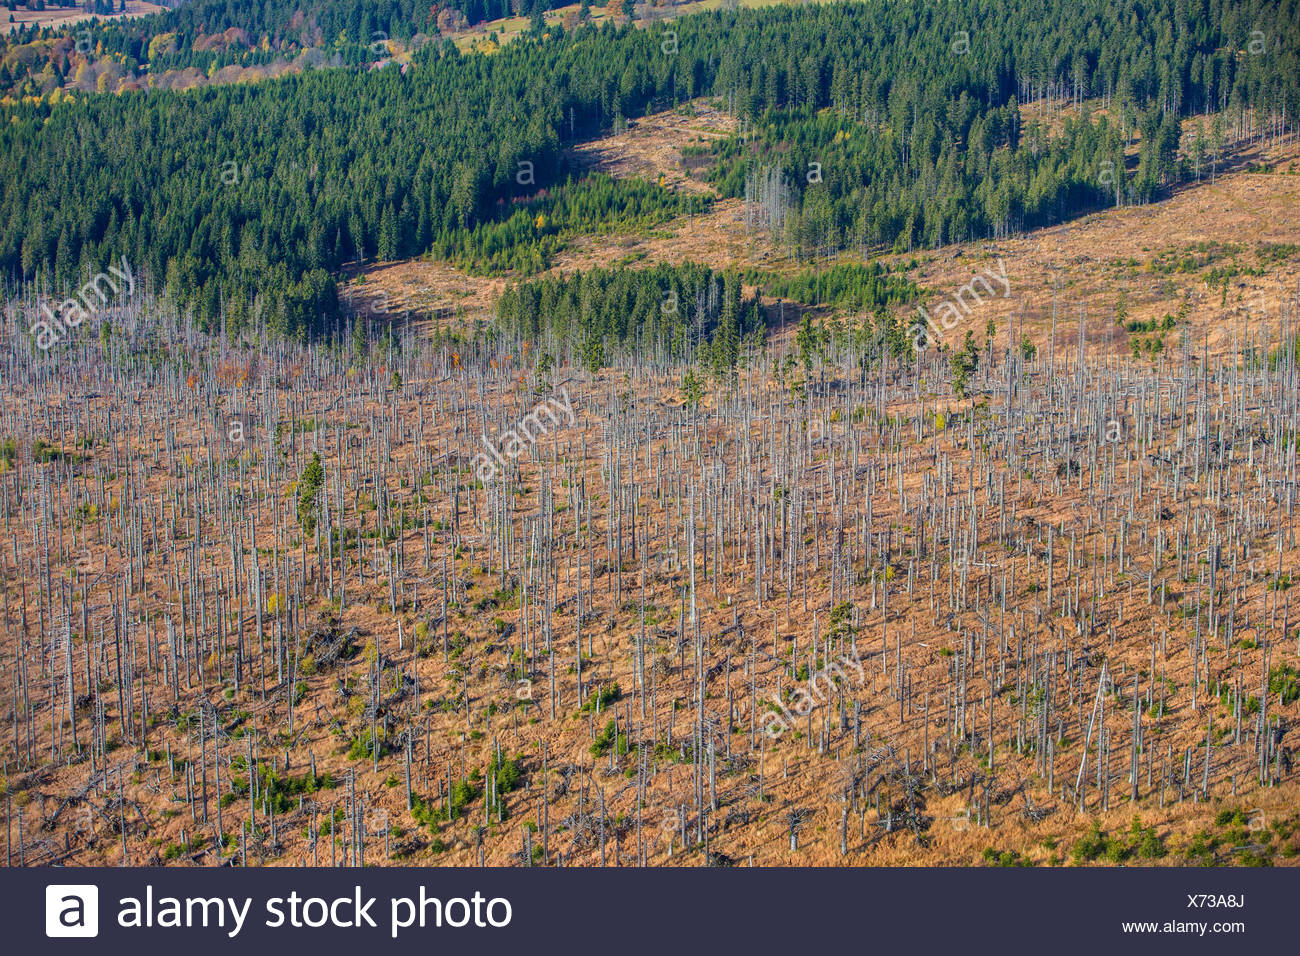 bark beetles, engraver beetles & ambrosia beetles, timber beetles (Scolytidae (Ipidae)), aerial view to spruce forest damaged by bark beetles, Czech Republic, Boehmerwald - Stock Image